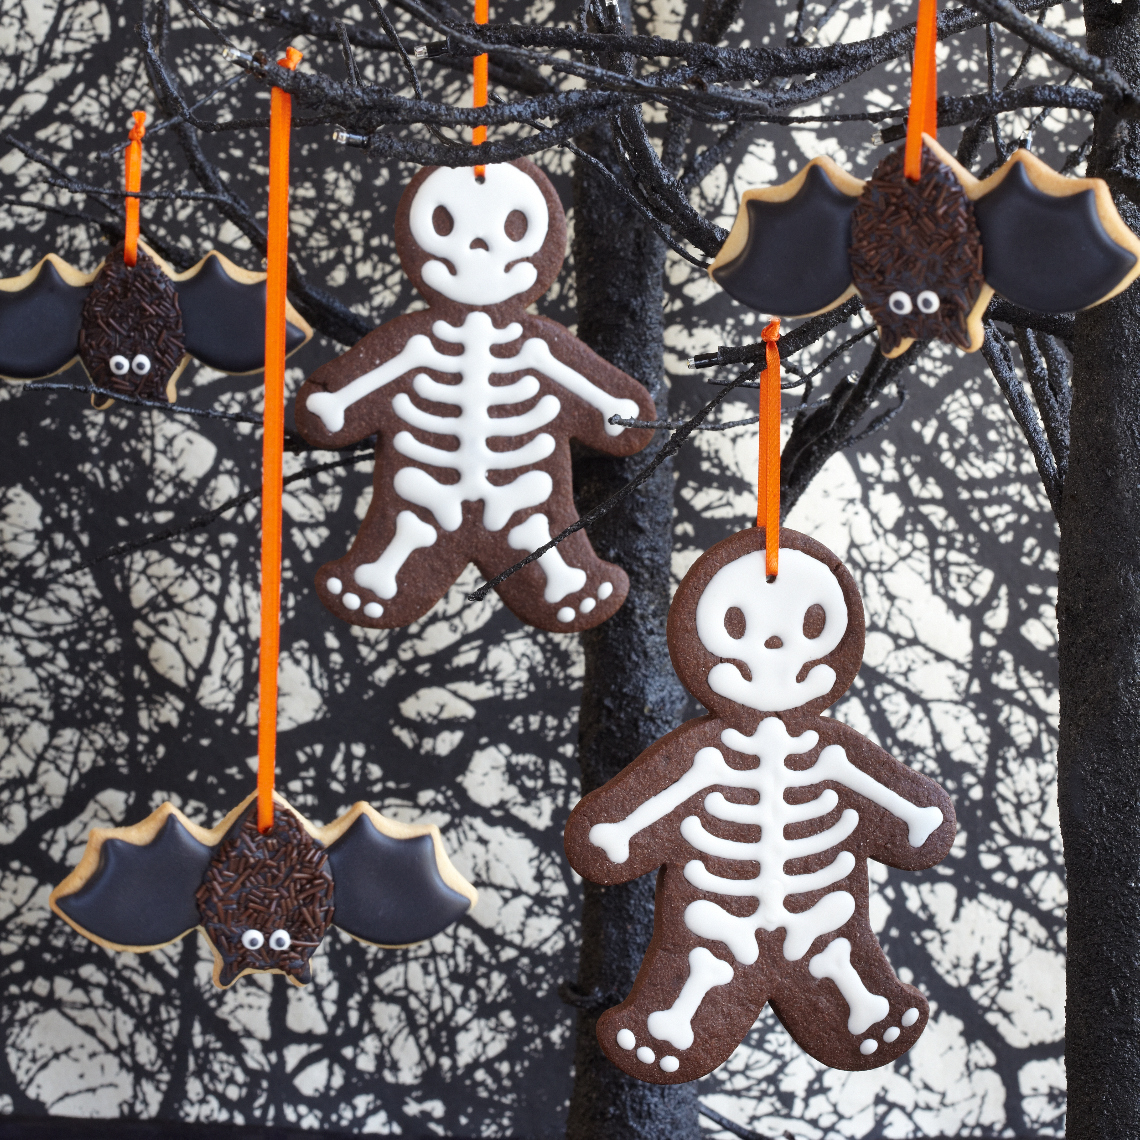 2013_03_07 Peggy Cookies_Halloween_13863.jpg